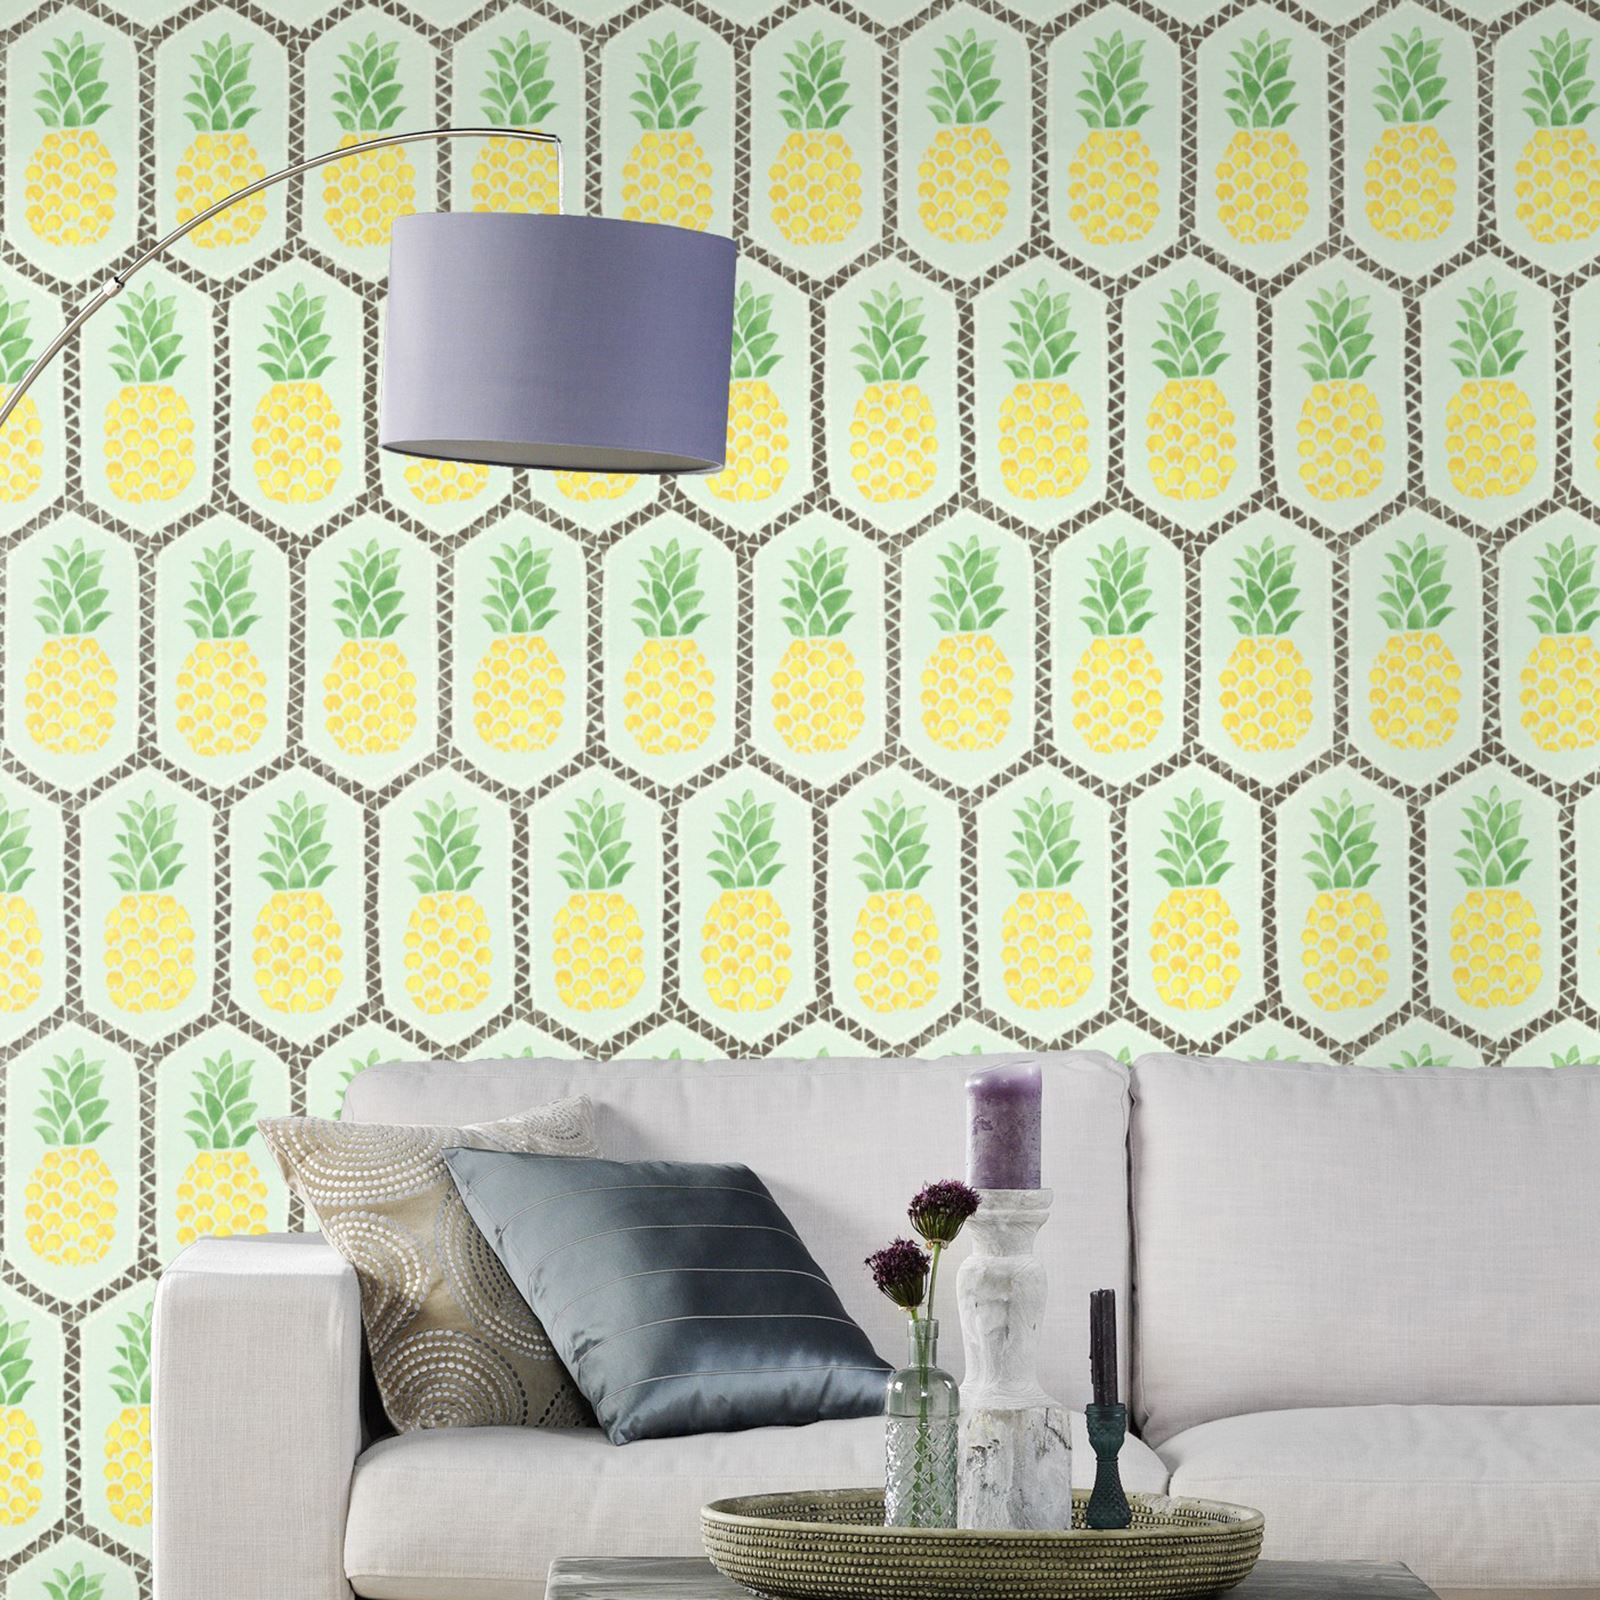 RASCH PINEAPPLE TEXTURED GEOMETRIC WALLPAPER - HOT PINK TEAL YELLOW ...